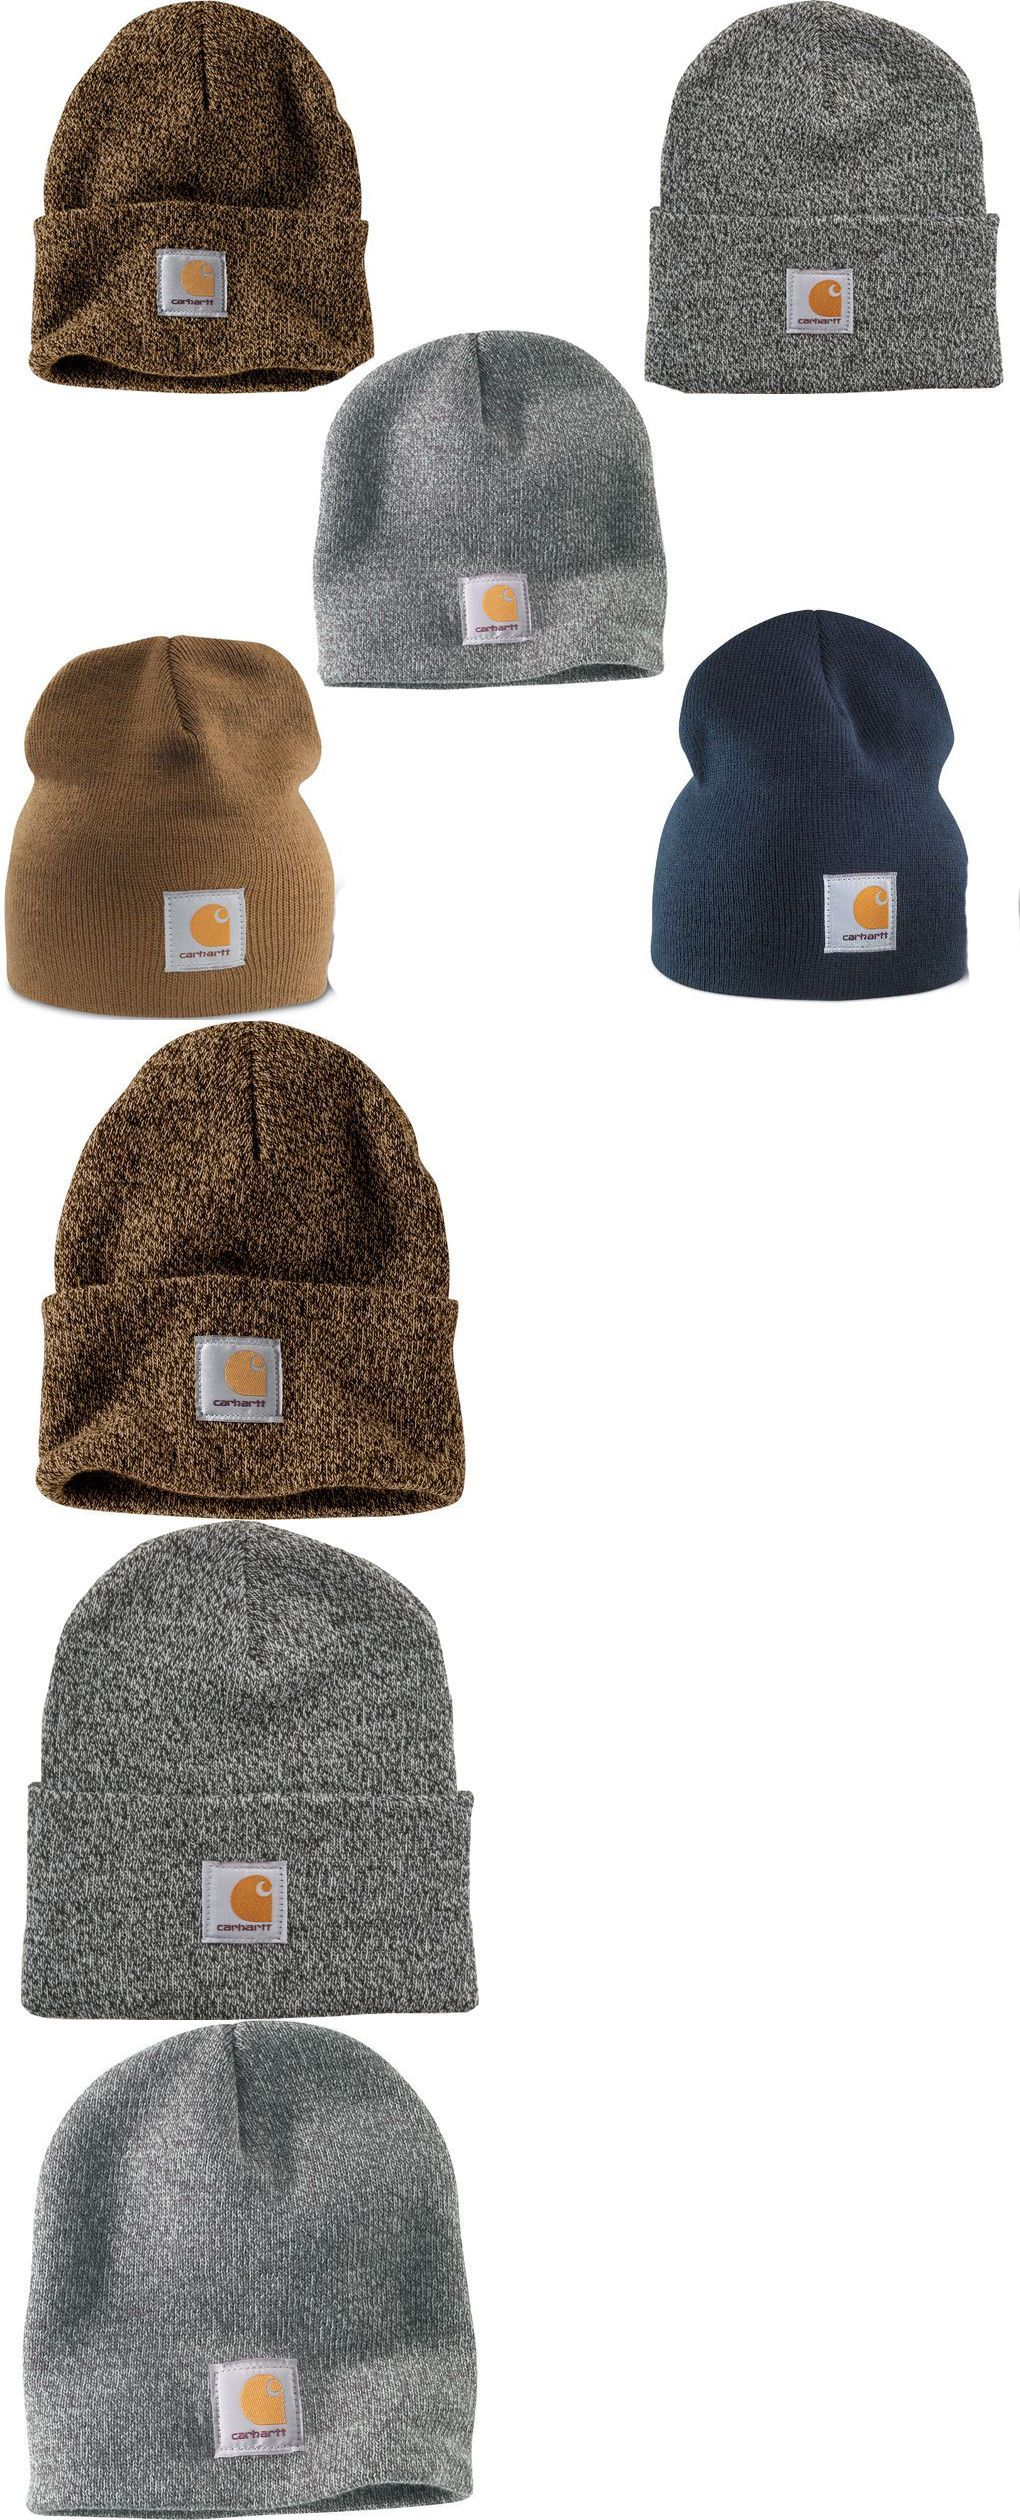 9c364c537ea5b2 Hats 52365: Carhartt Men S Acrylic Knit Stocking Cap Hat Beanie New 5  Colors To Choose From -> BUY IT NOW ONLY: $13.49 on #eBay #carhartt  #acrylic #stocking ...